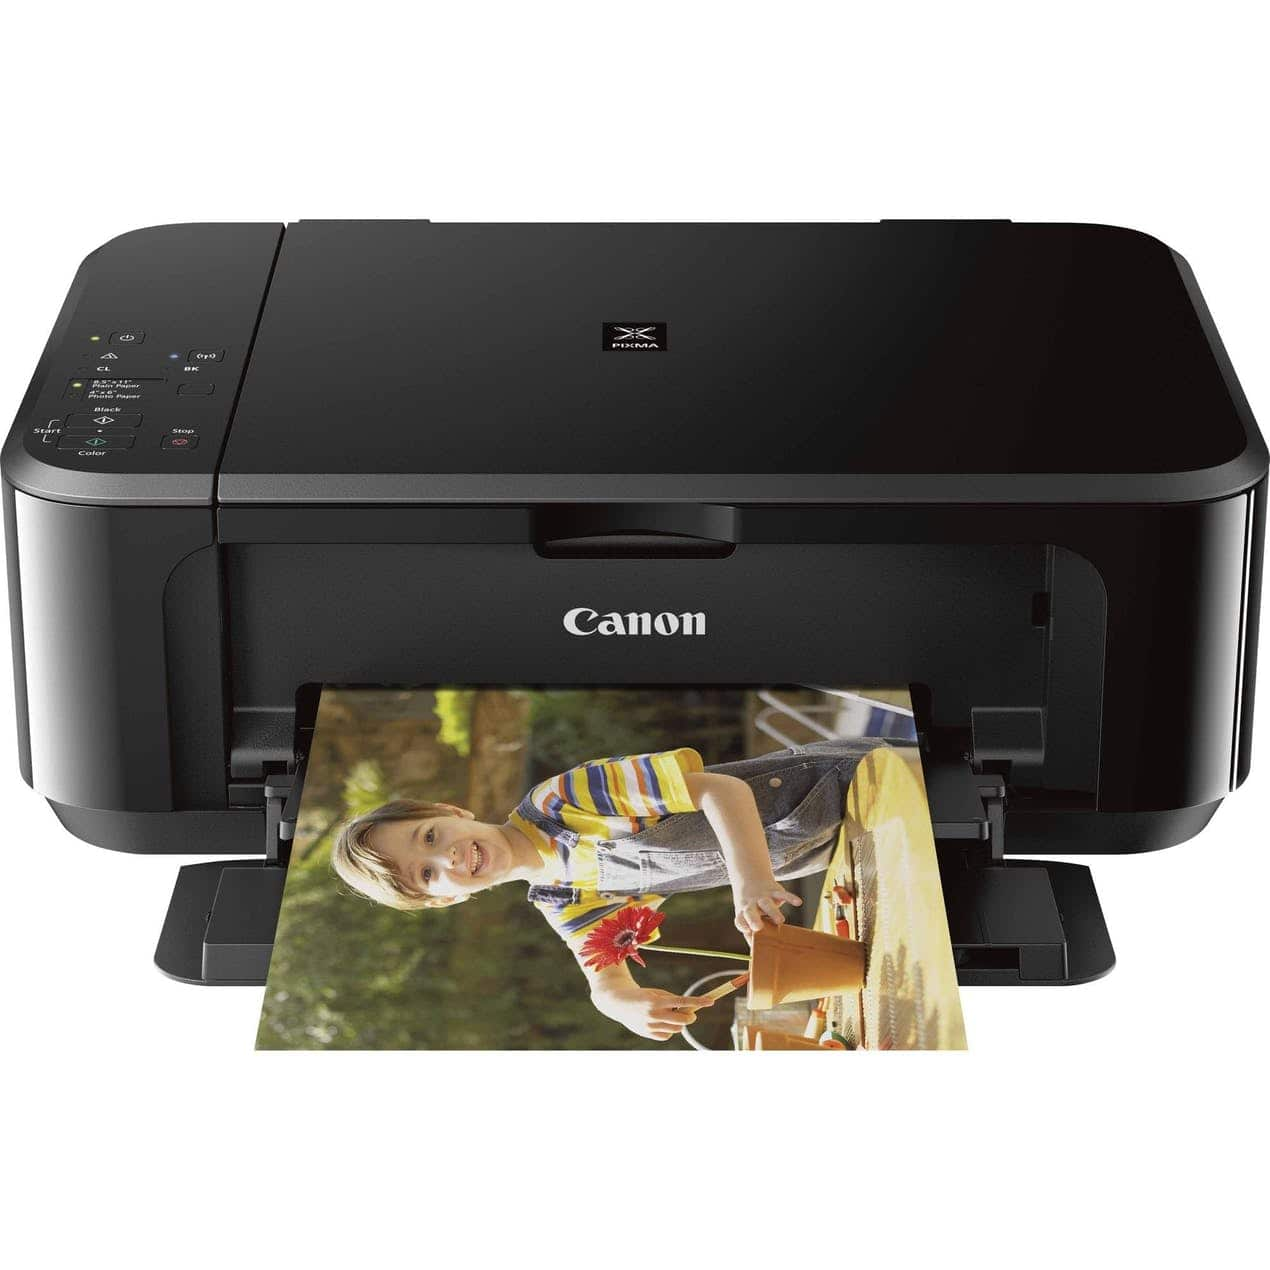 Canon PIXMA MG3620 Wireless All-In-One Printer (Ink Sold Separately) $19.99 +Free Shipping @Tanga